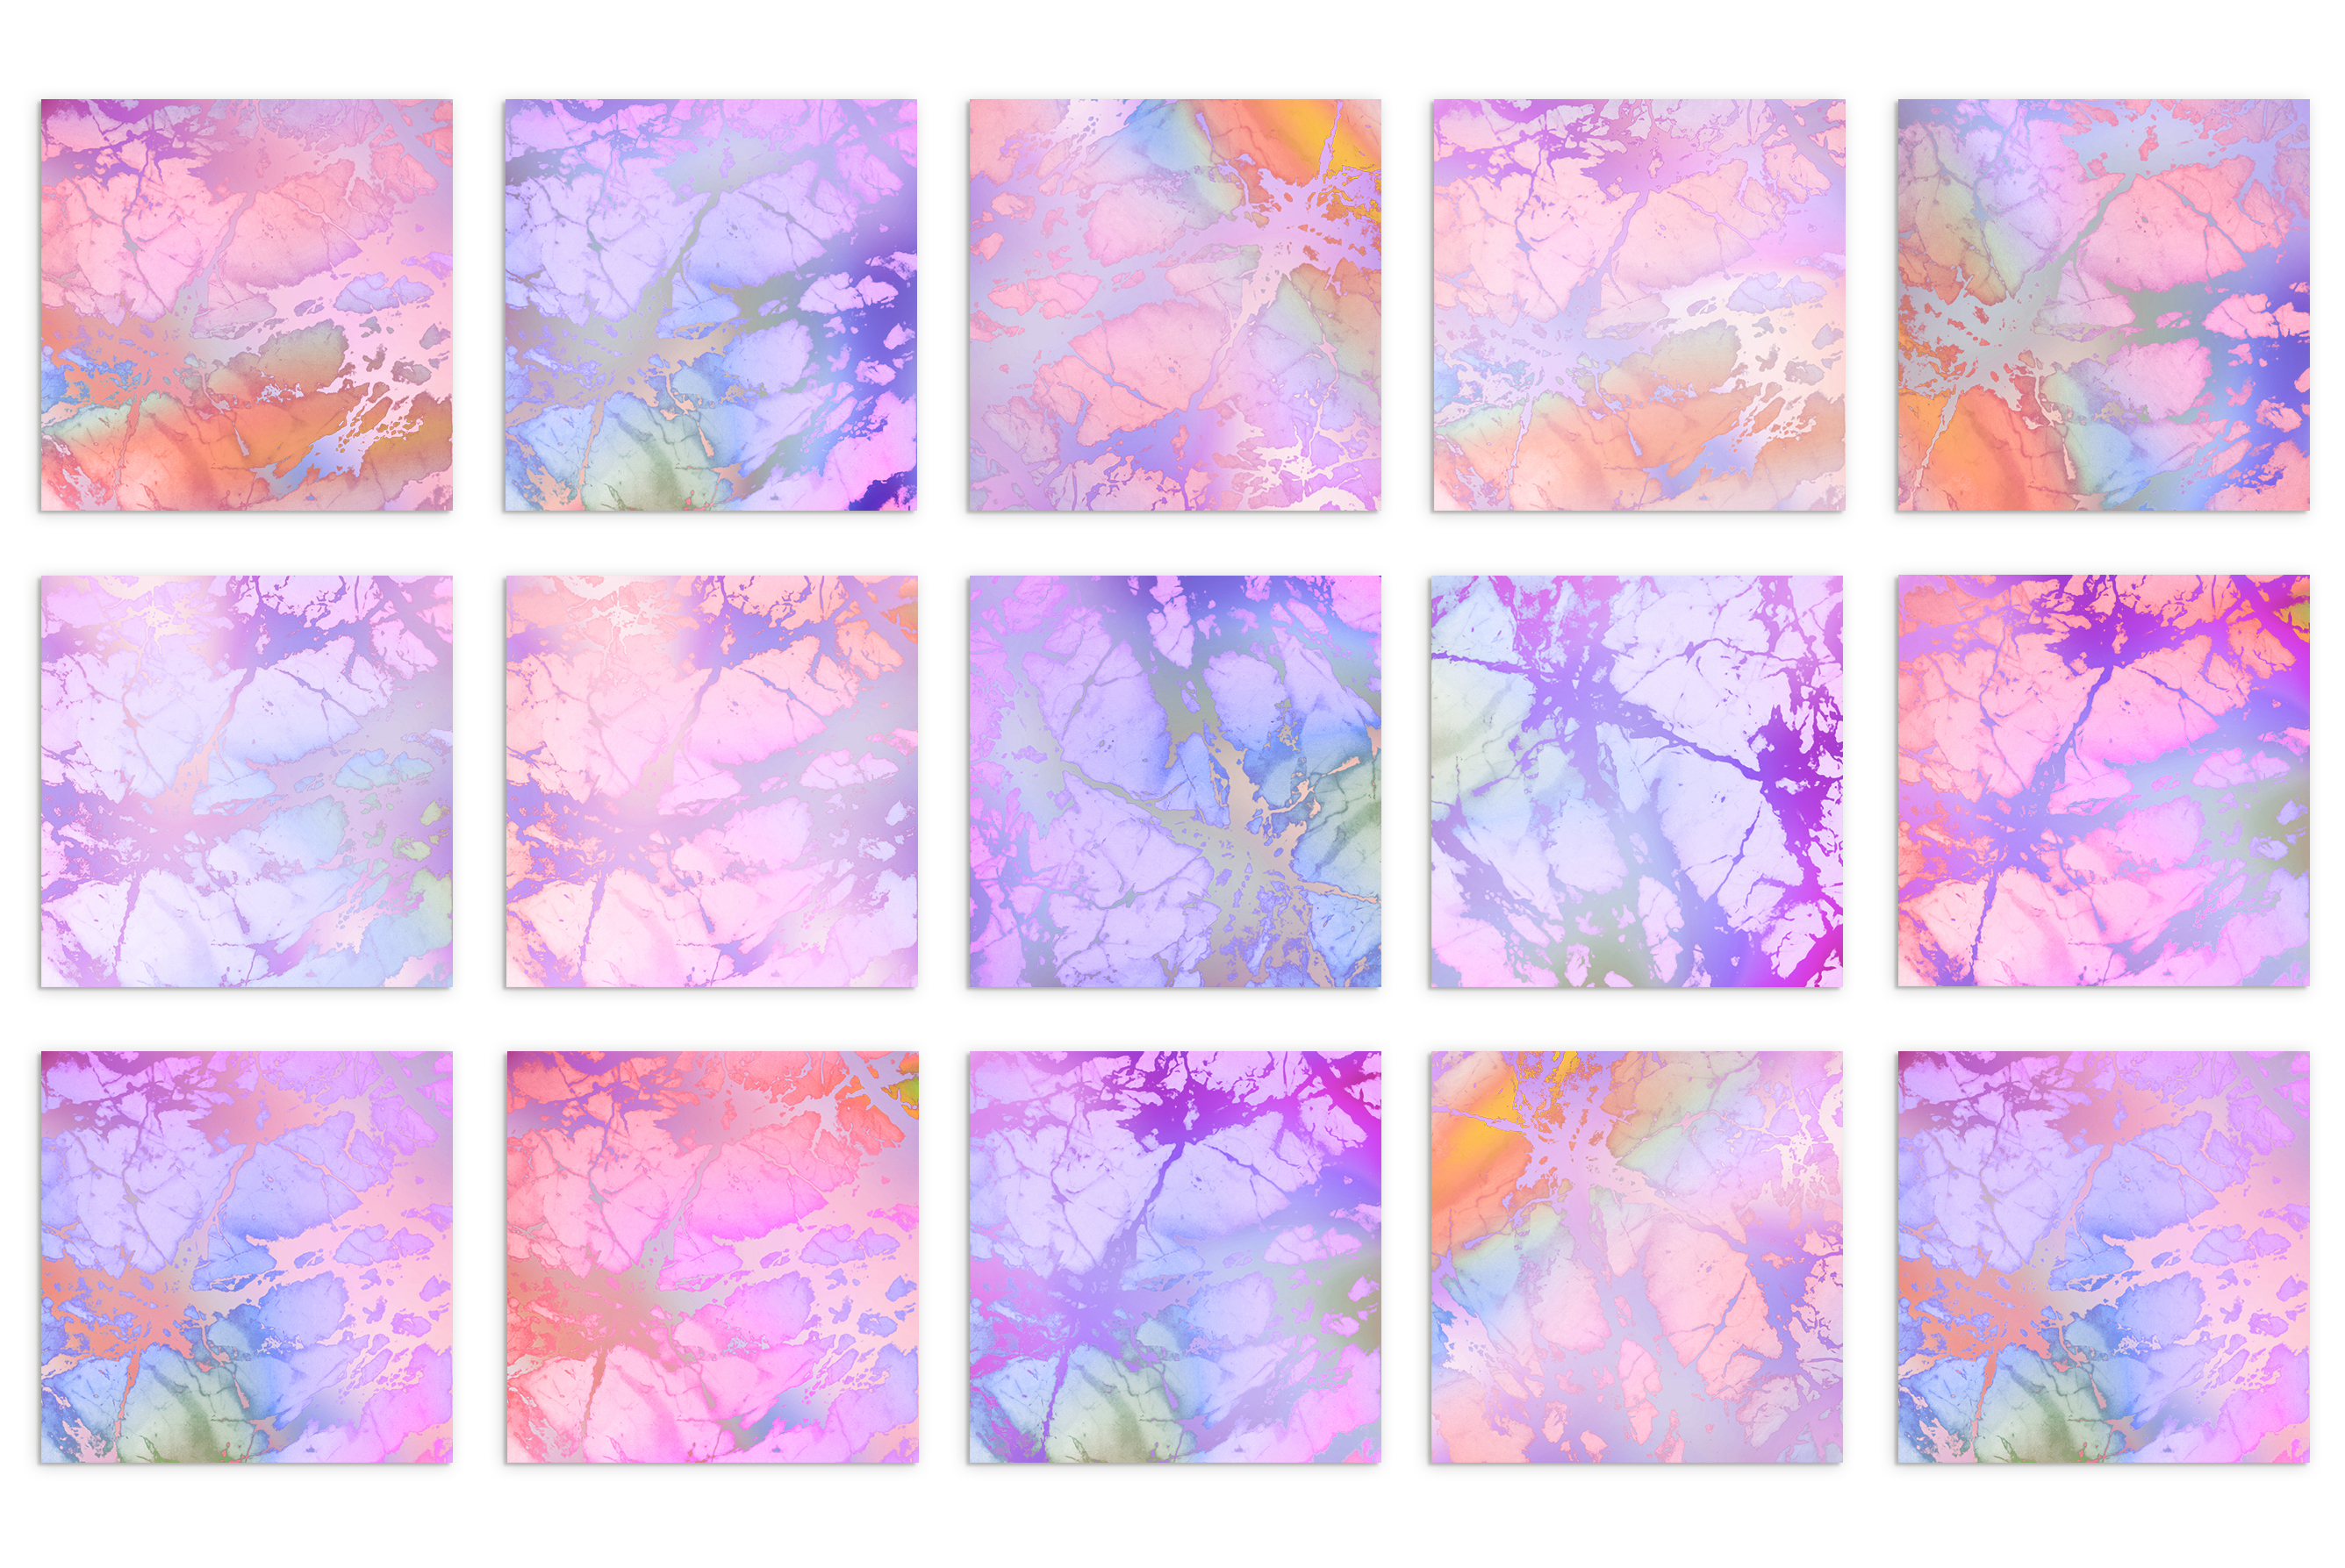 Rose Iridescent Marble Textures example image 3